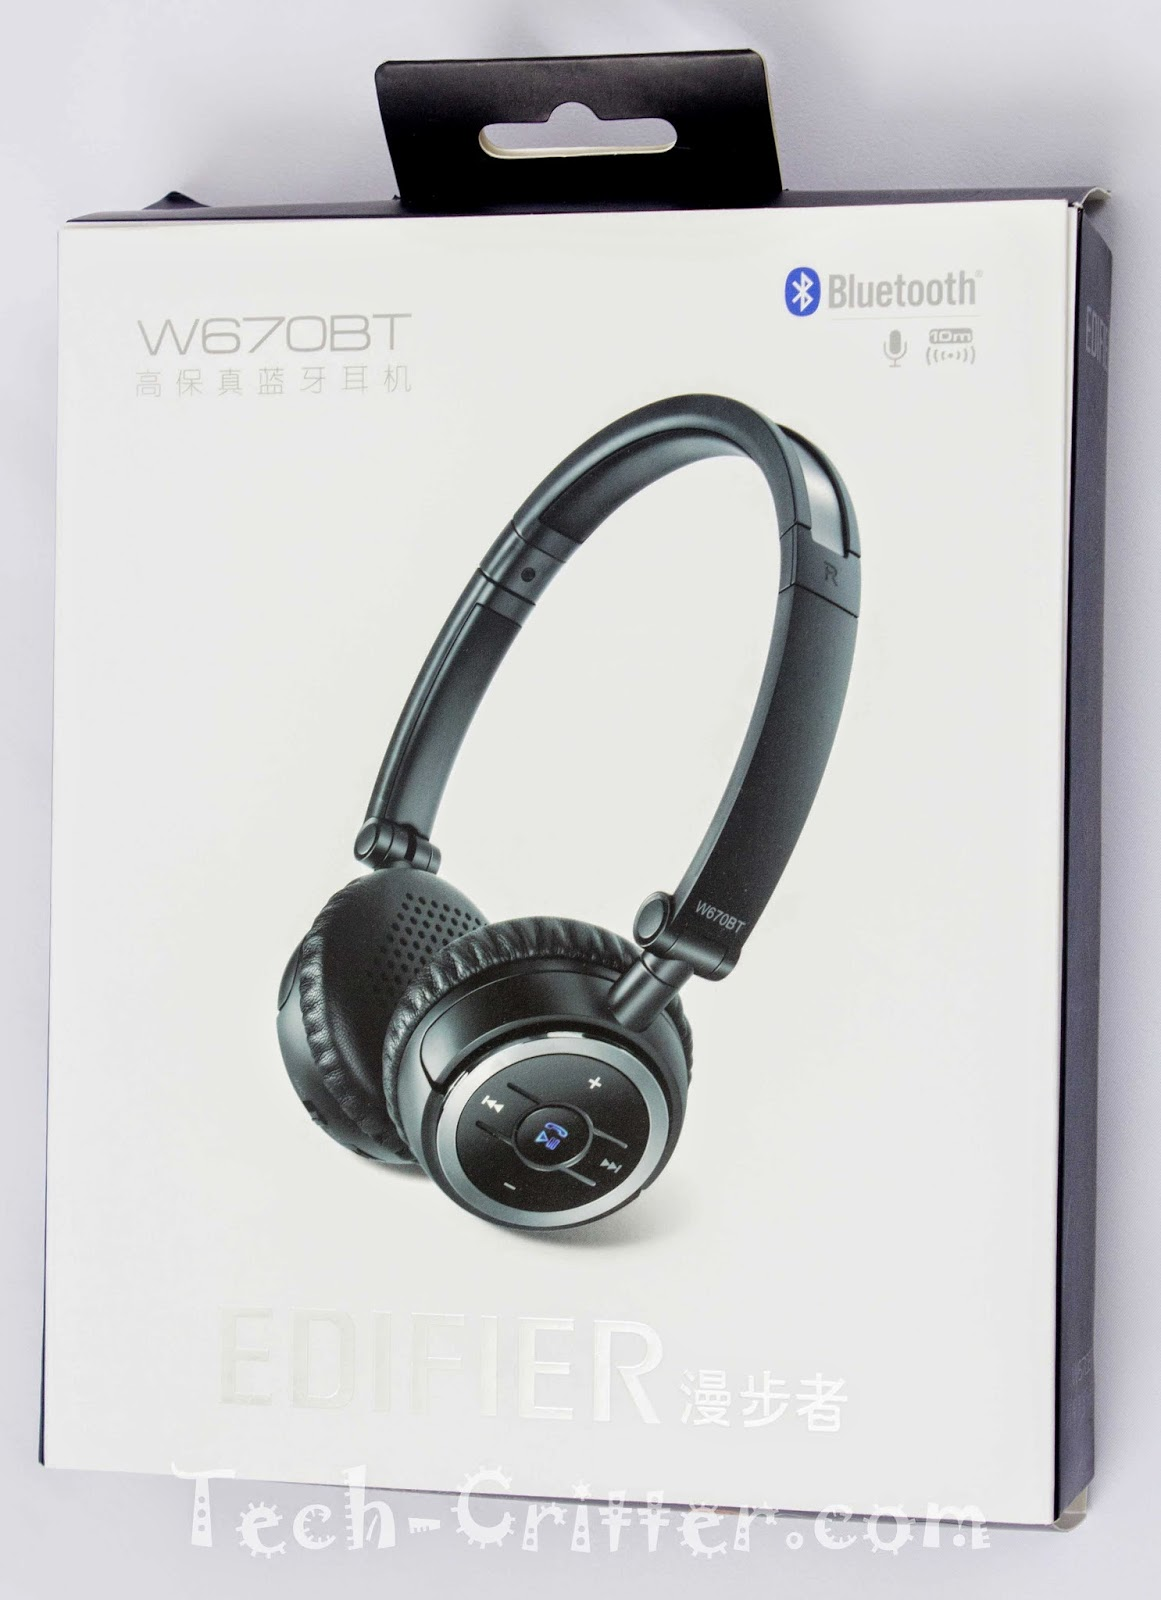 Unboxing & Review: Edifier W670BT Stereo Bluetooth Headset 36